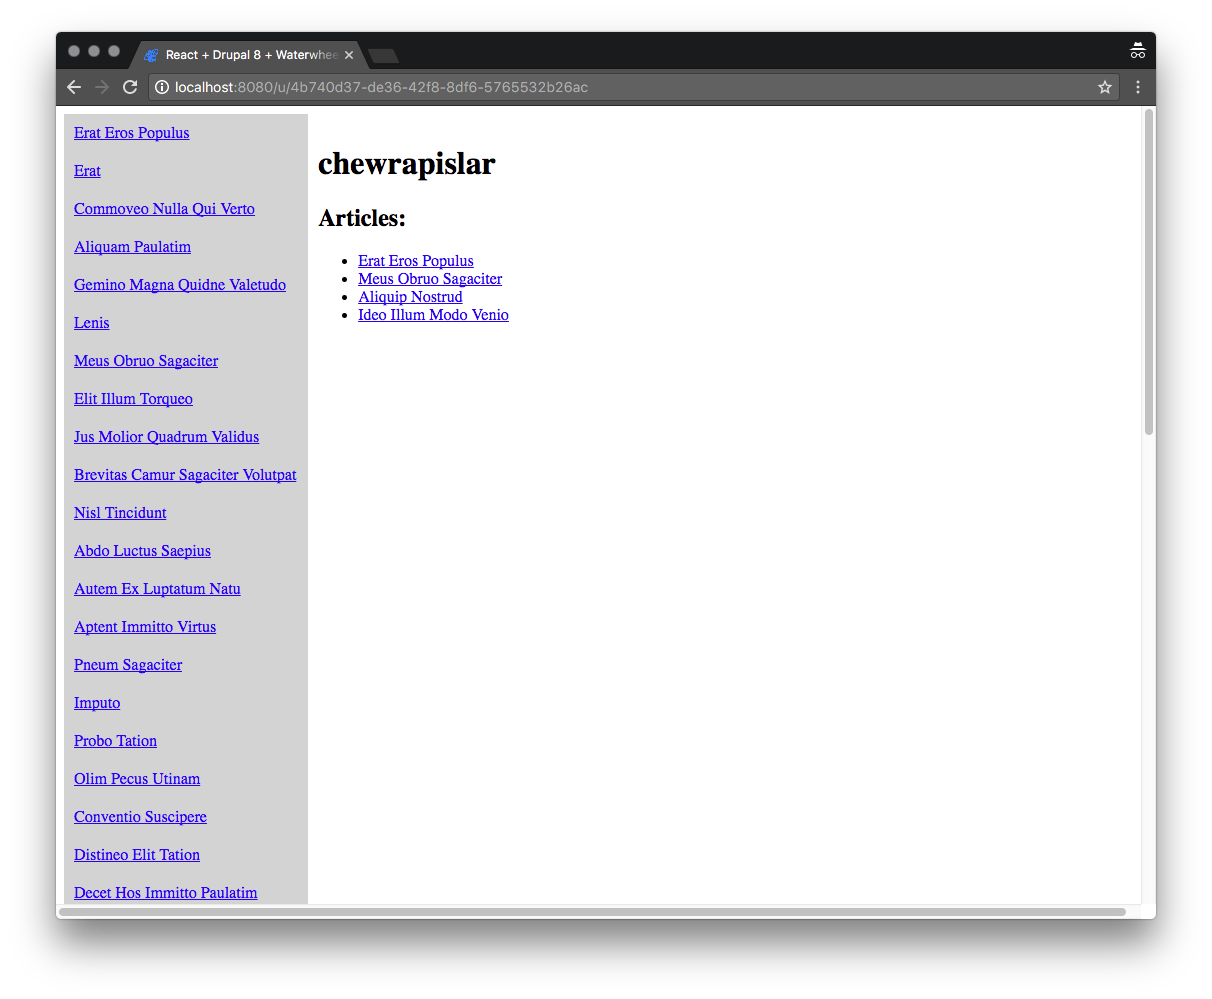 Image containing screenshot of user page on react-waterwheel-app